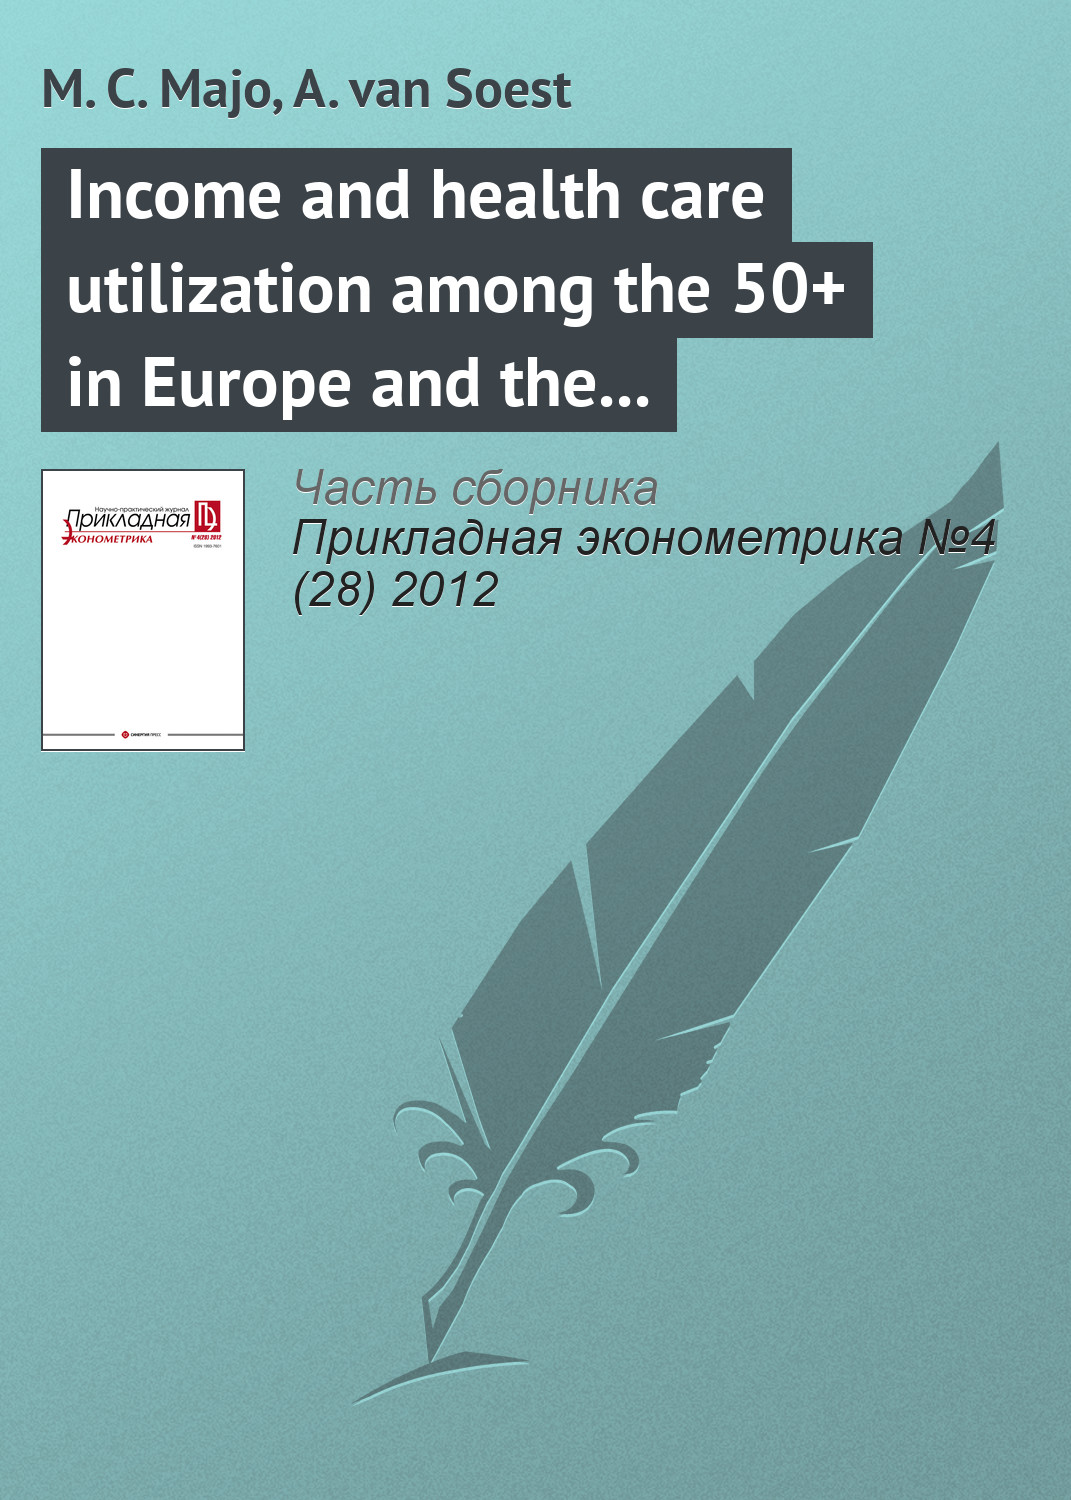 М. С. Majo Income and health care utilization among the 50+ in Europe and the US цена